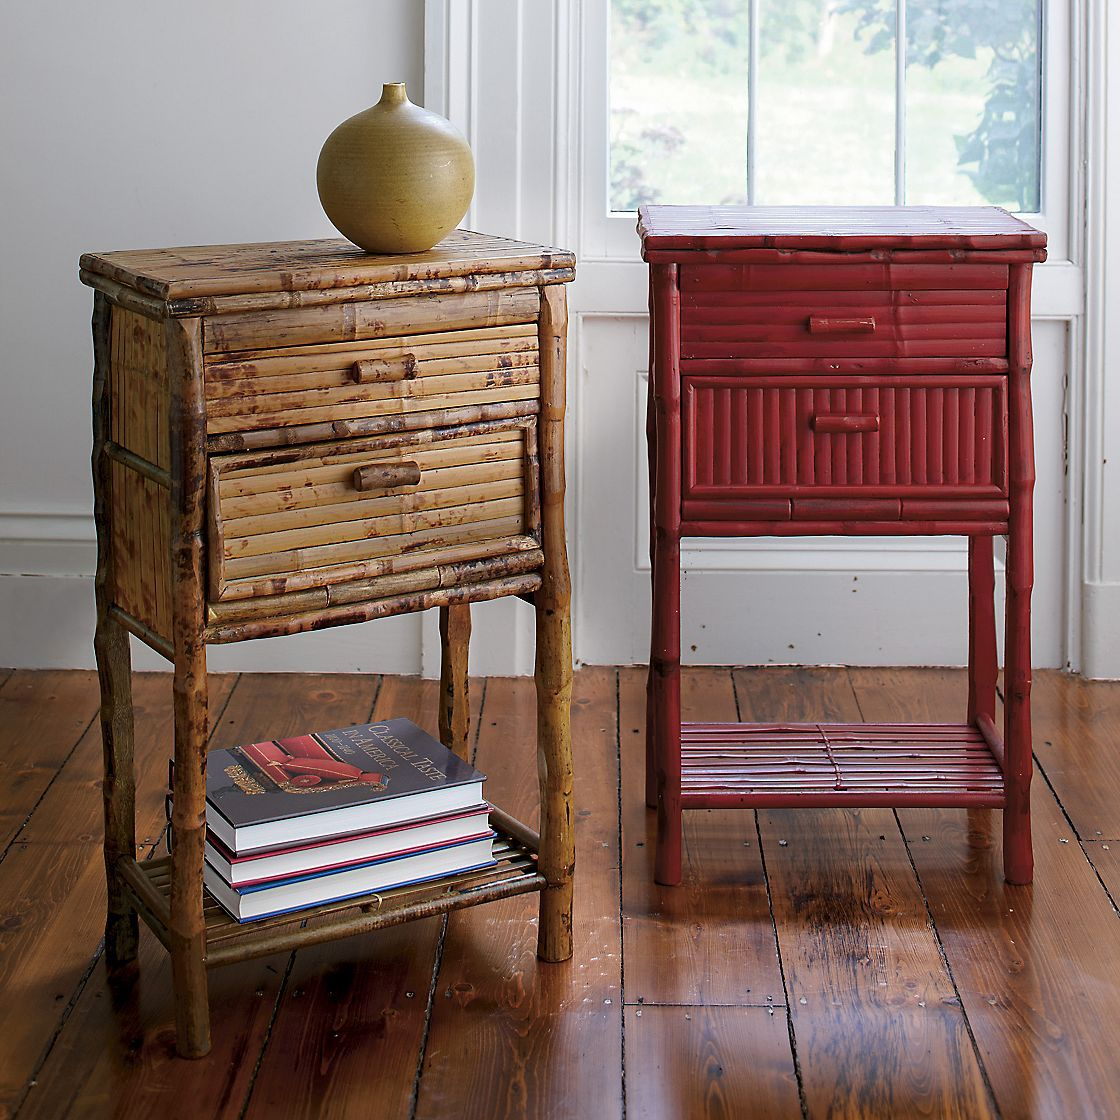 Best Bamboo Bedside Table From The Company Store 240 640 x 480